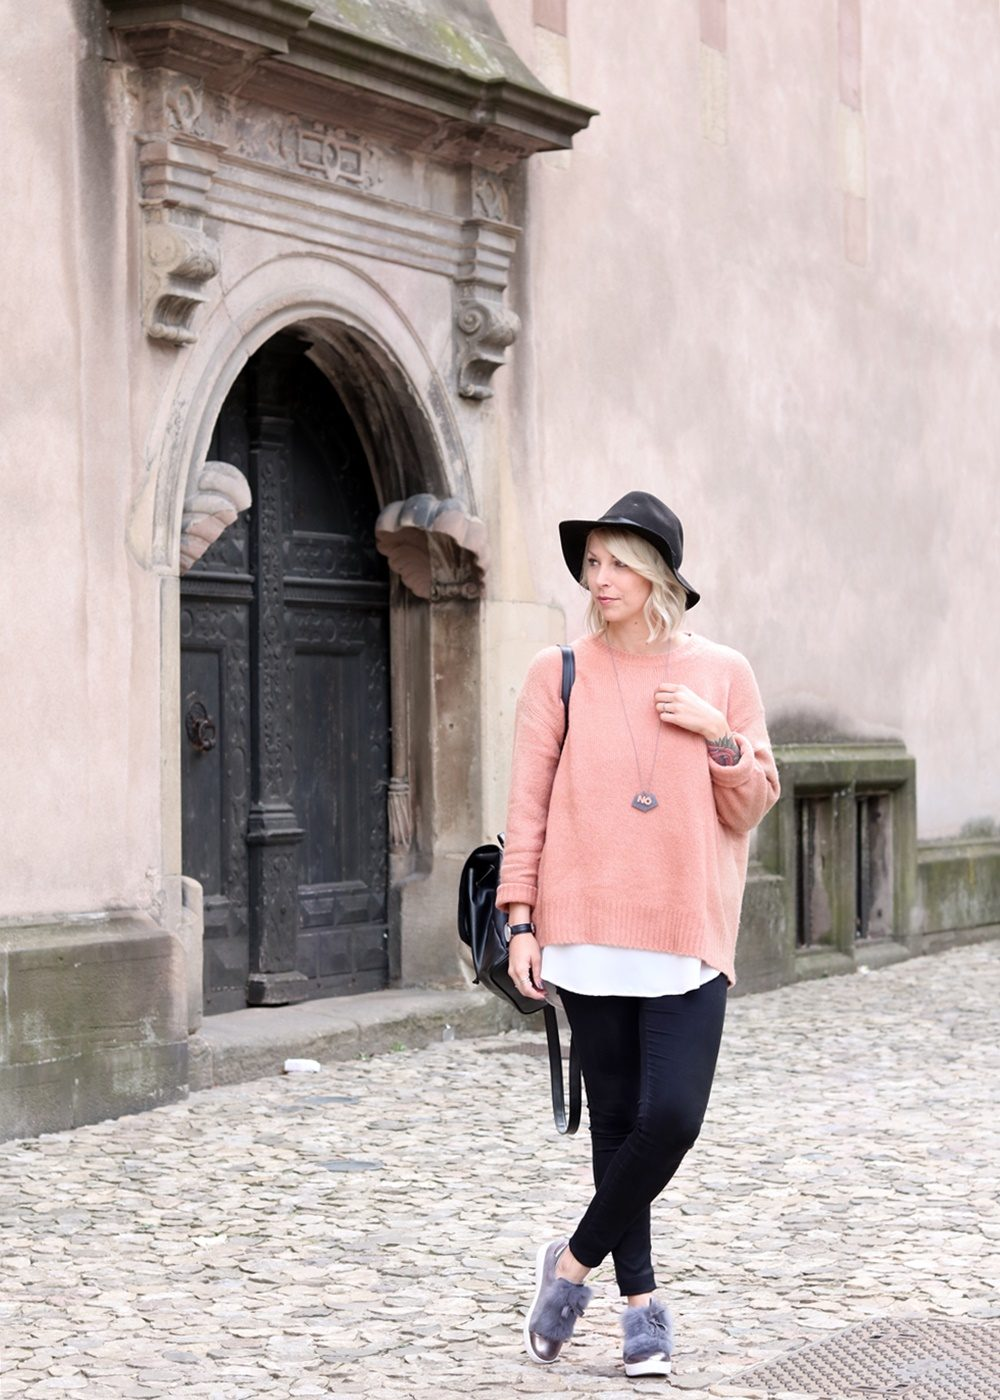 fashionblogger-outfit-rosa-strickpullover-zara-graue-sneaker-fell-rucksack-hut-jeans-2